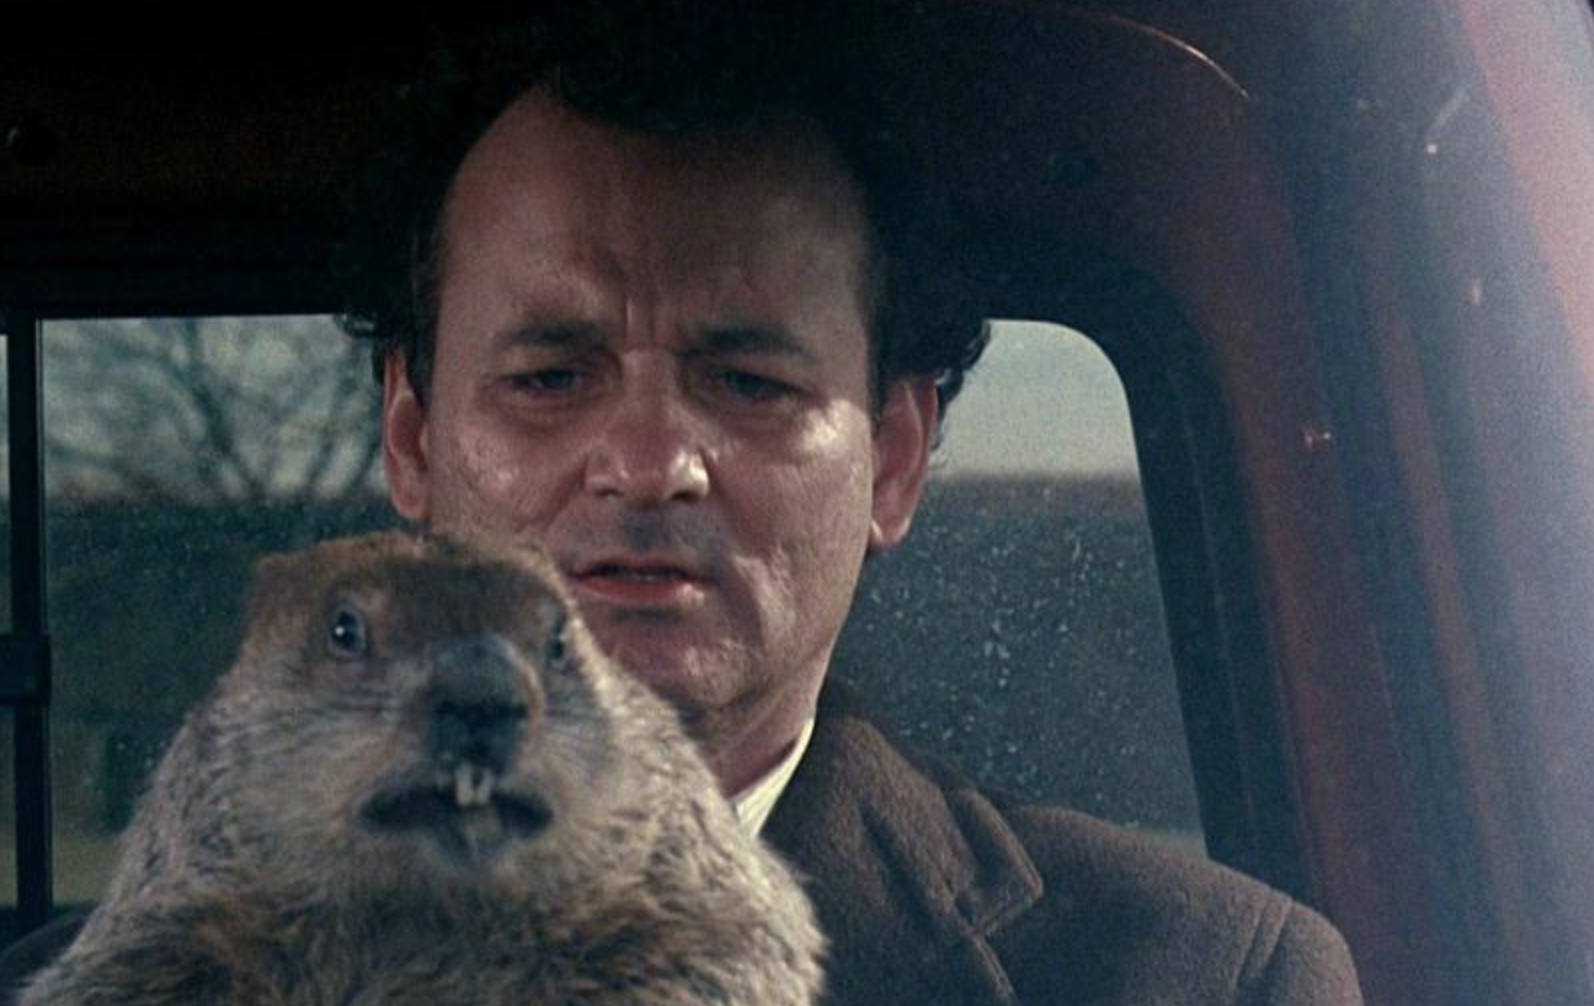 Groundhog Day likely has German origins